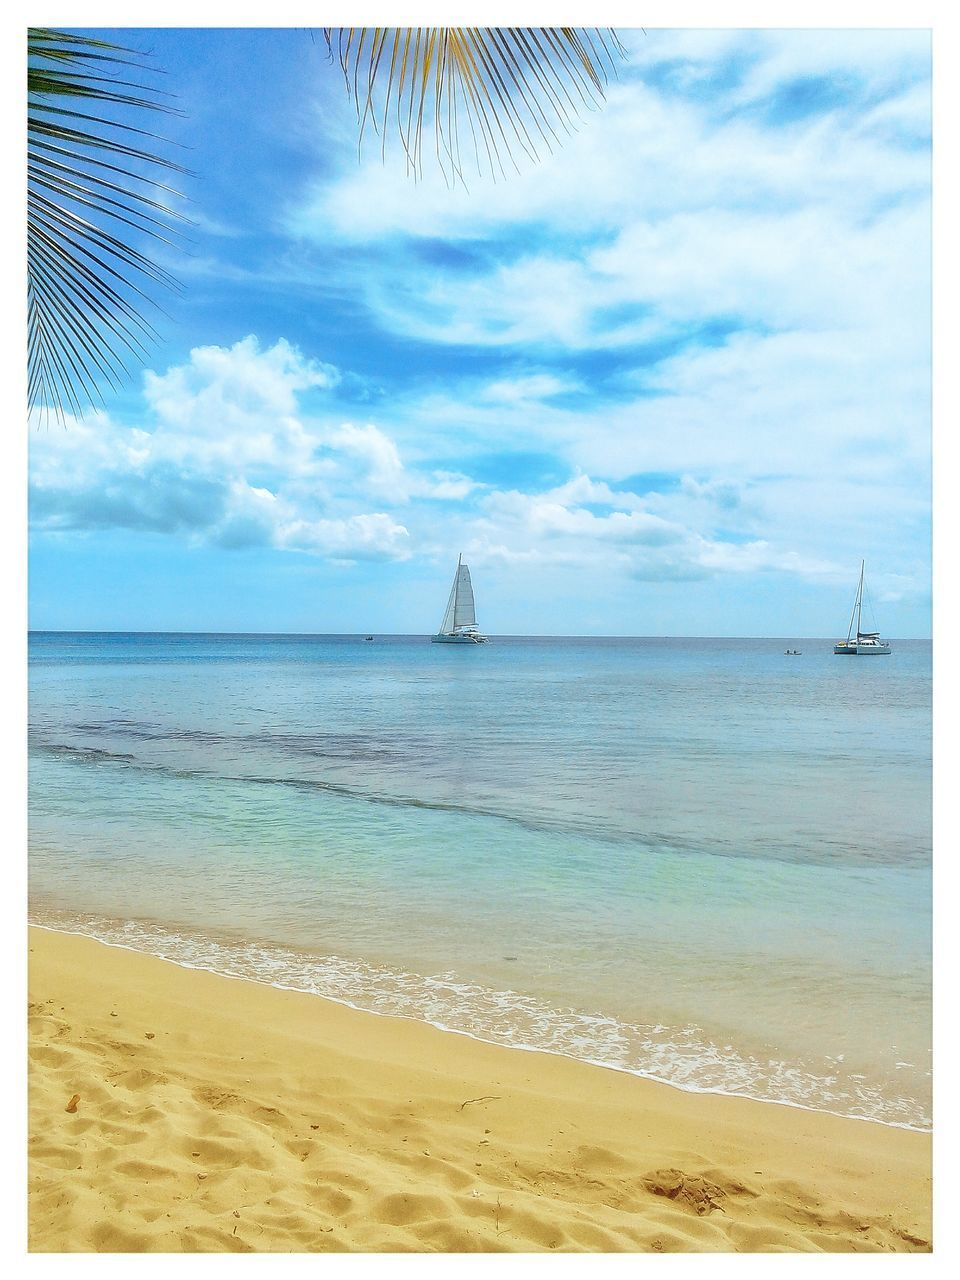 sea, horizon over water, beach, sky, sand, water, shore, beauty in nature, sailboat, day, scenics, outdoors, nature, tranquility, tranquil scene, cloud - sky, no people, nautical vessel, vacations, travel destinations, lighthouse, wave